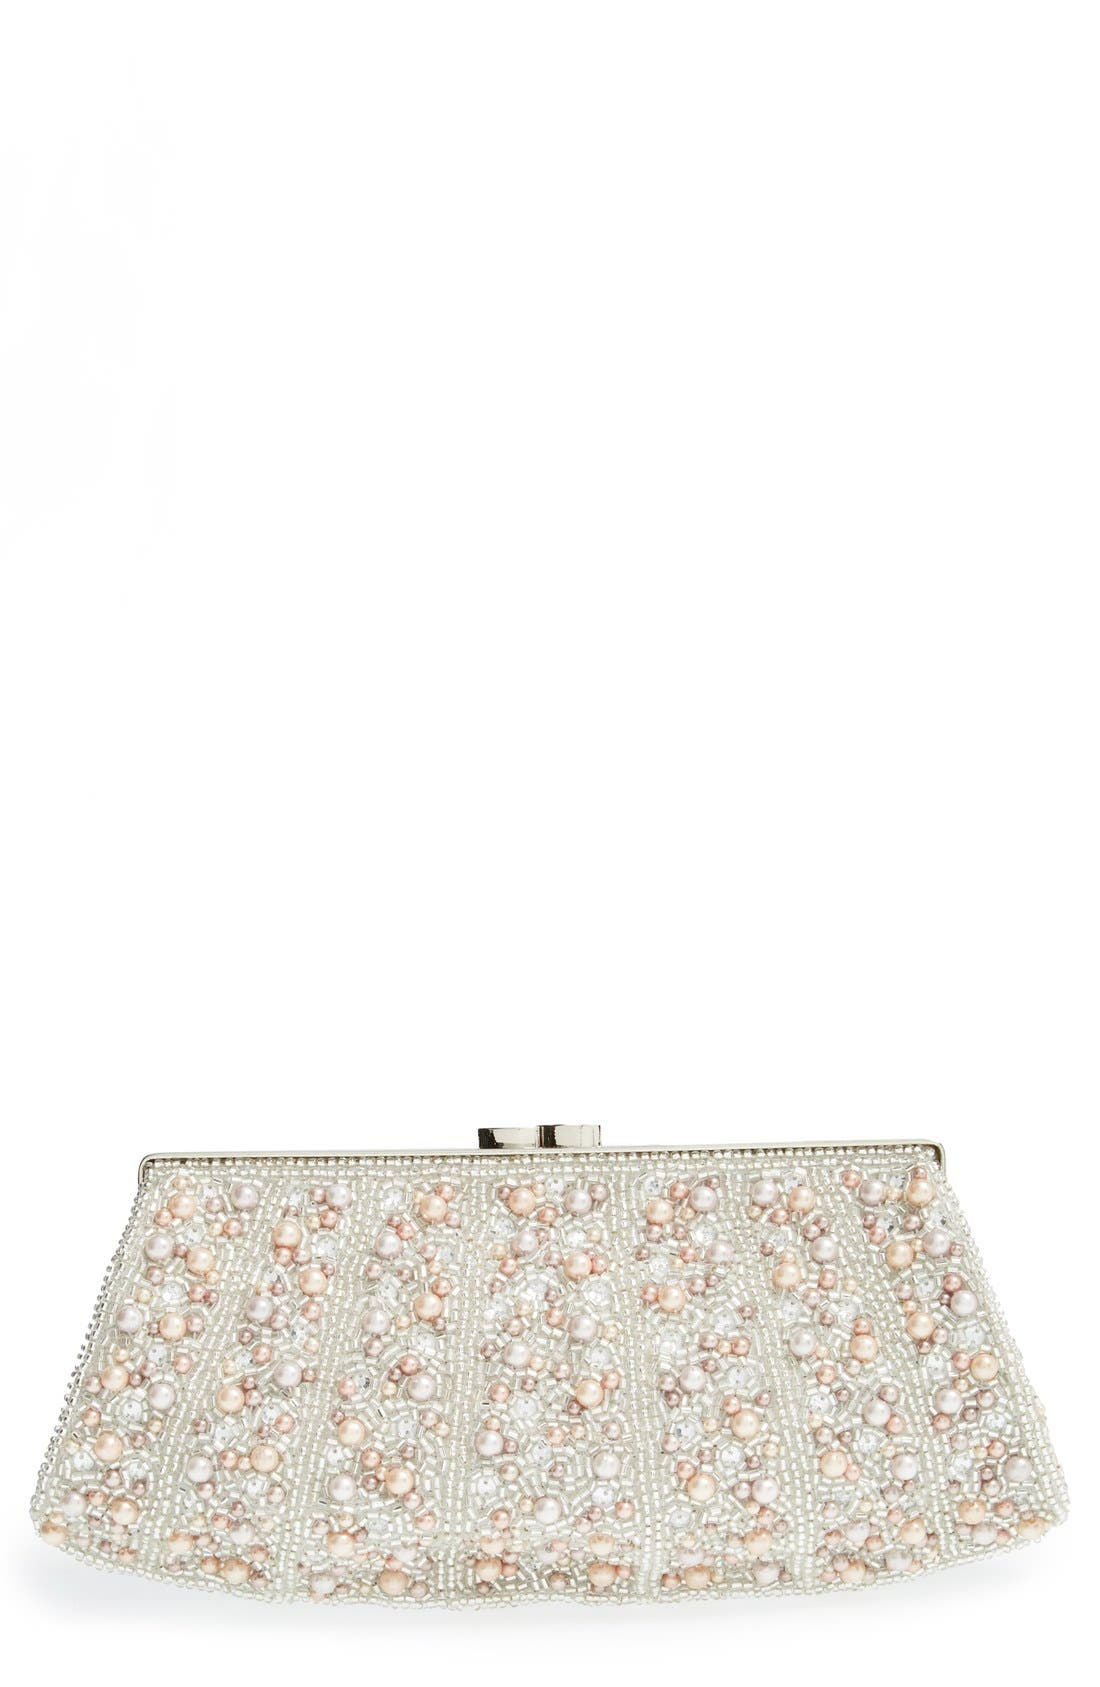 Main Image - Glint 'Pearl Encrusted' Clutch